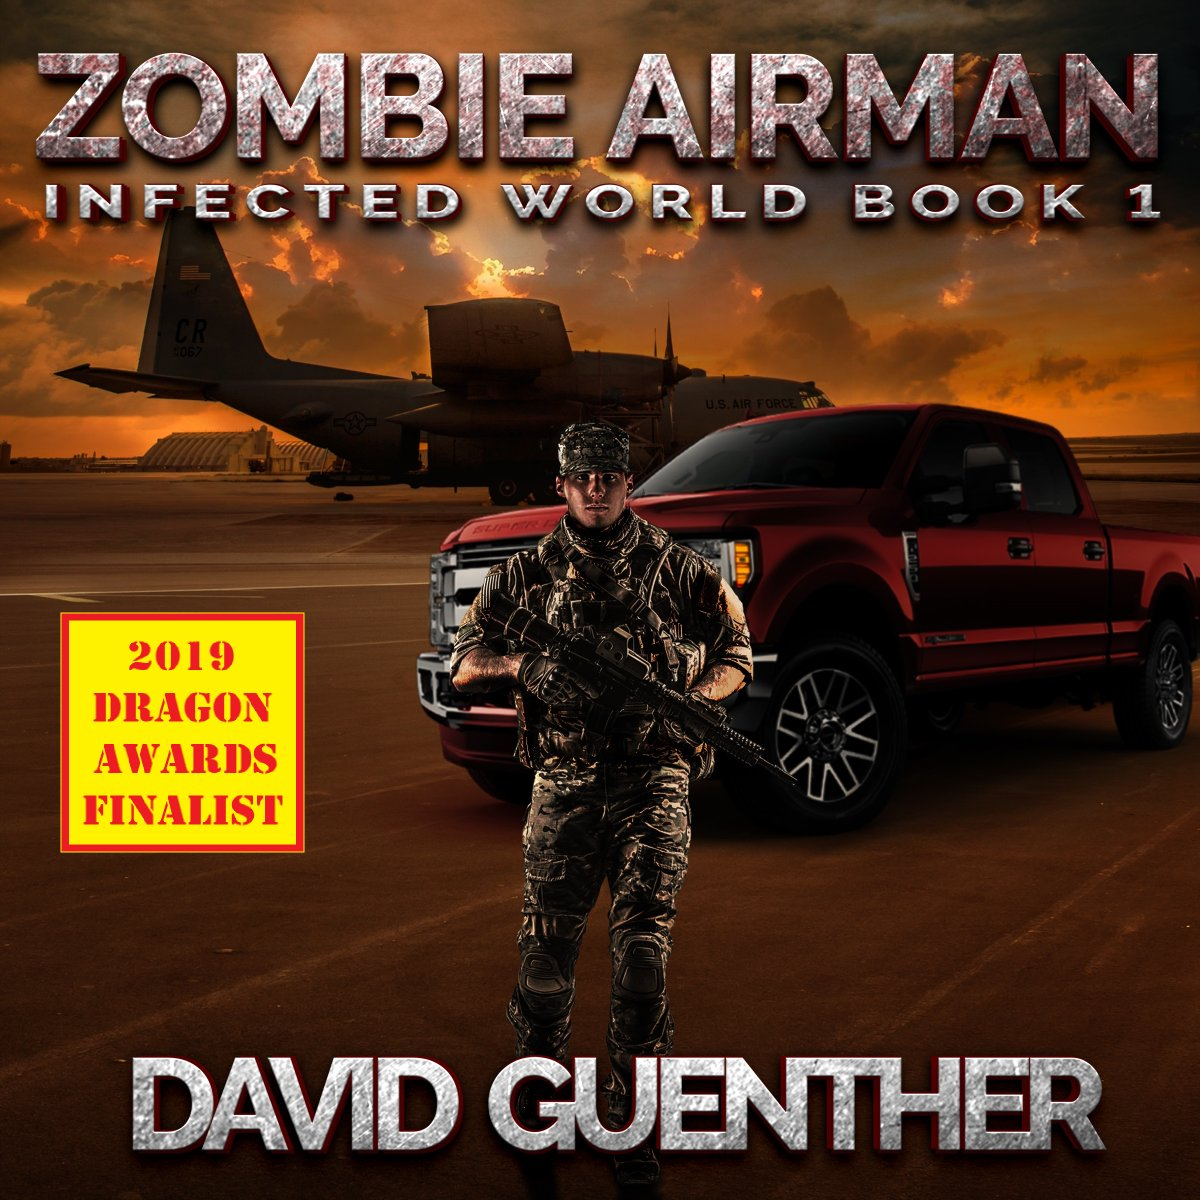 Ignore the phone and screaming, lock the doors, and pour yourself a drink. Now settle back and enjoy ZOMBIE AIRMAN. #BookSeries #KU #kindle #eBook #bookaddict #thriller #usn #USAFwomen #airwoman #Marines #army #soldier #zombiehorde #zombiestory  https://amzn.to/2T1C3Mppic.twitter.com/4m9UX8LmVF